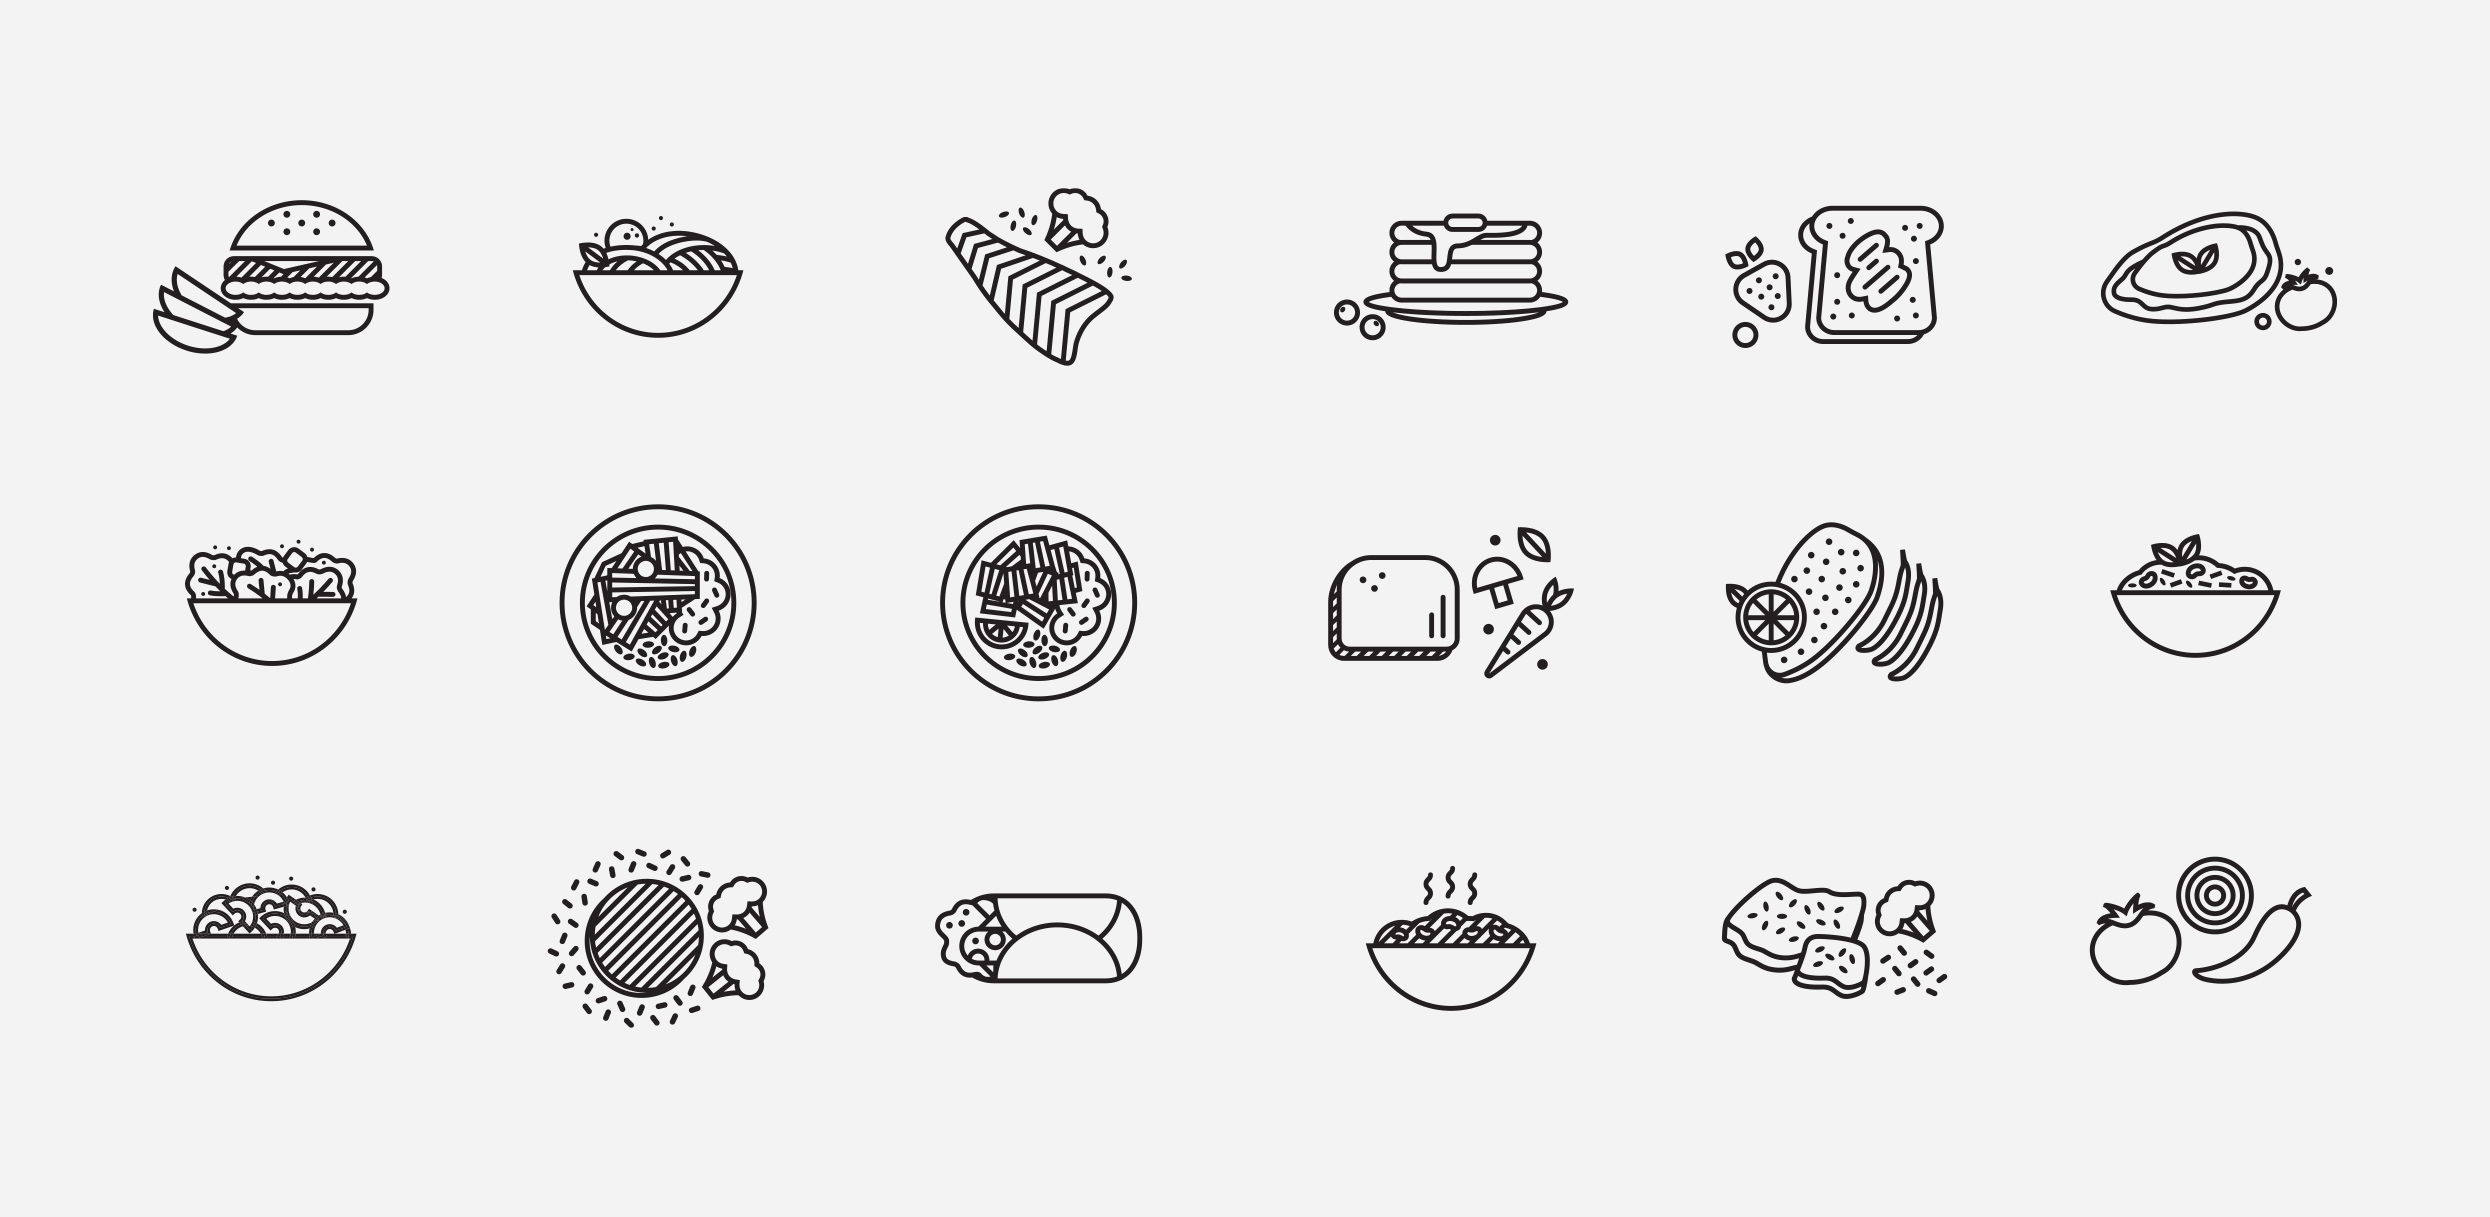 Iconography of various meals.